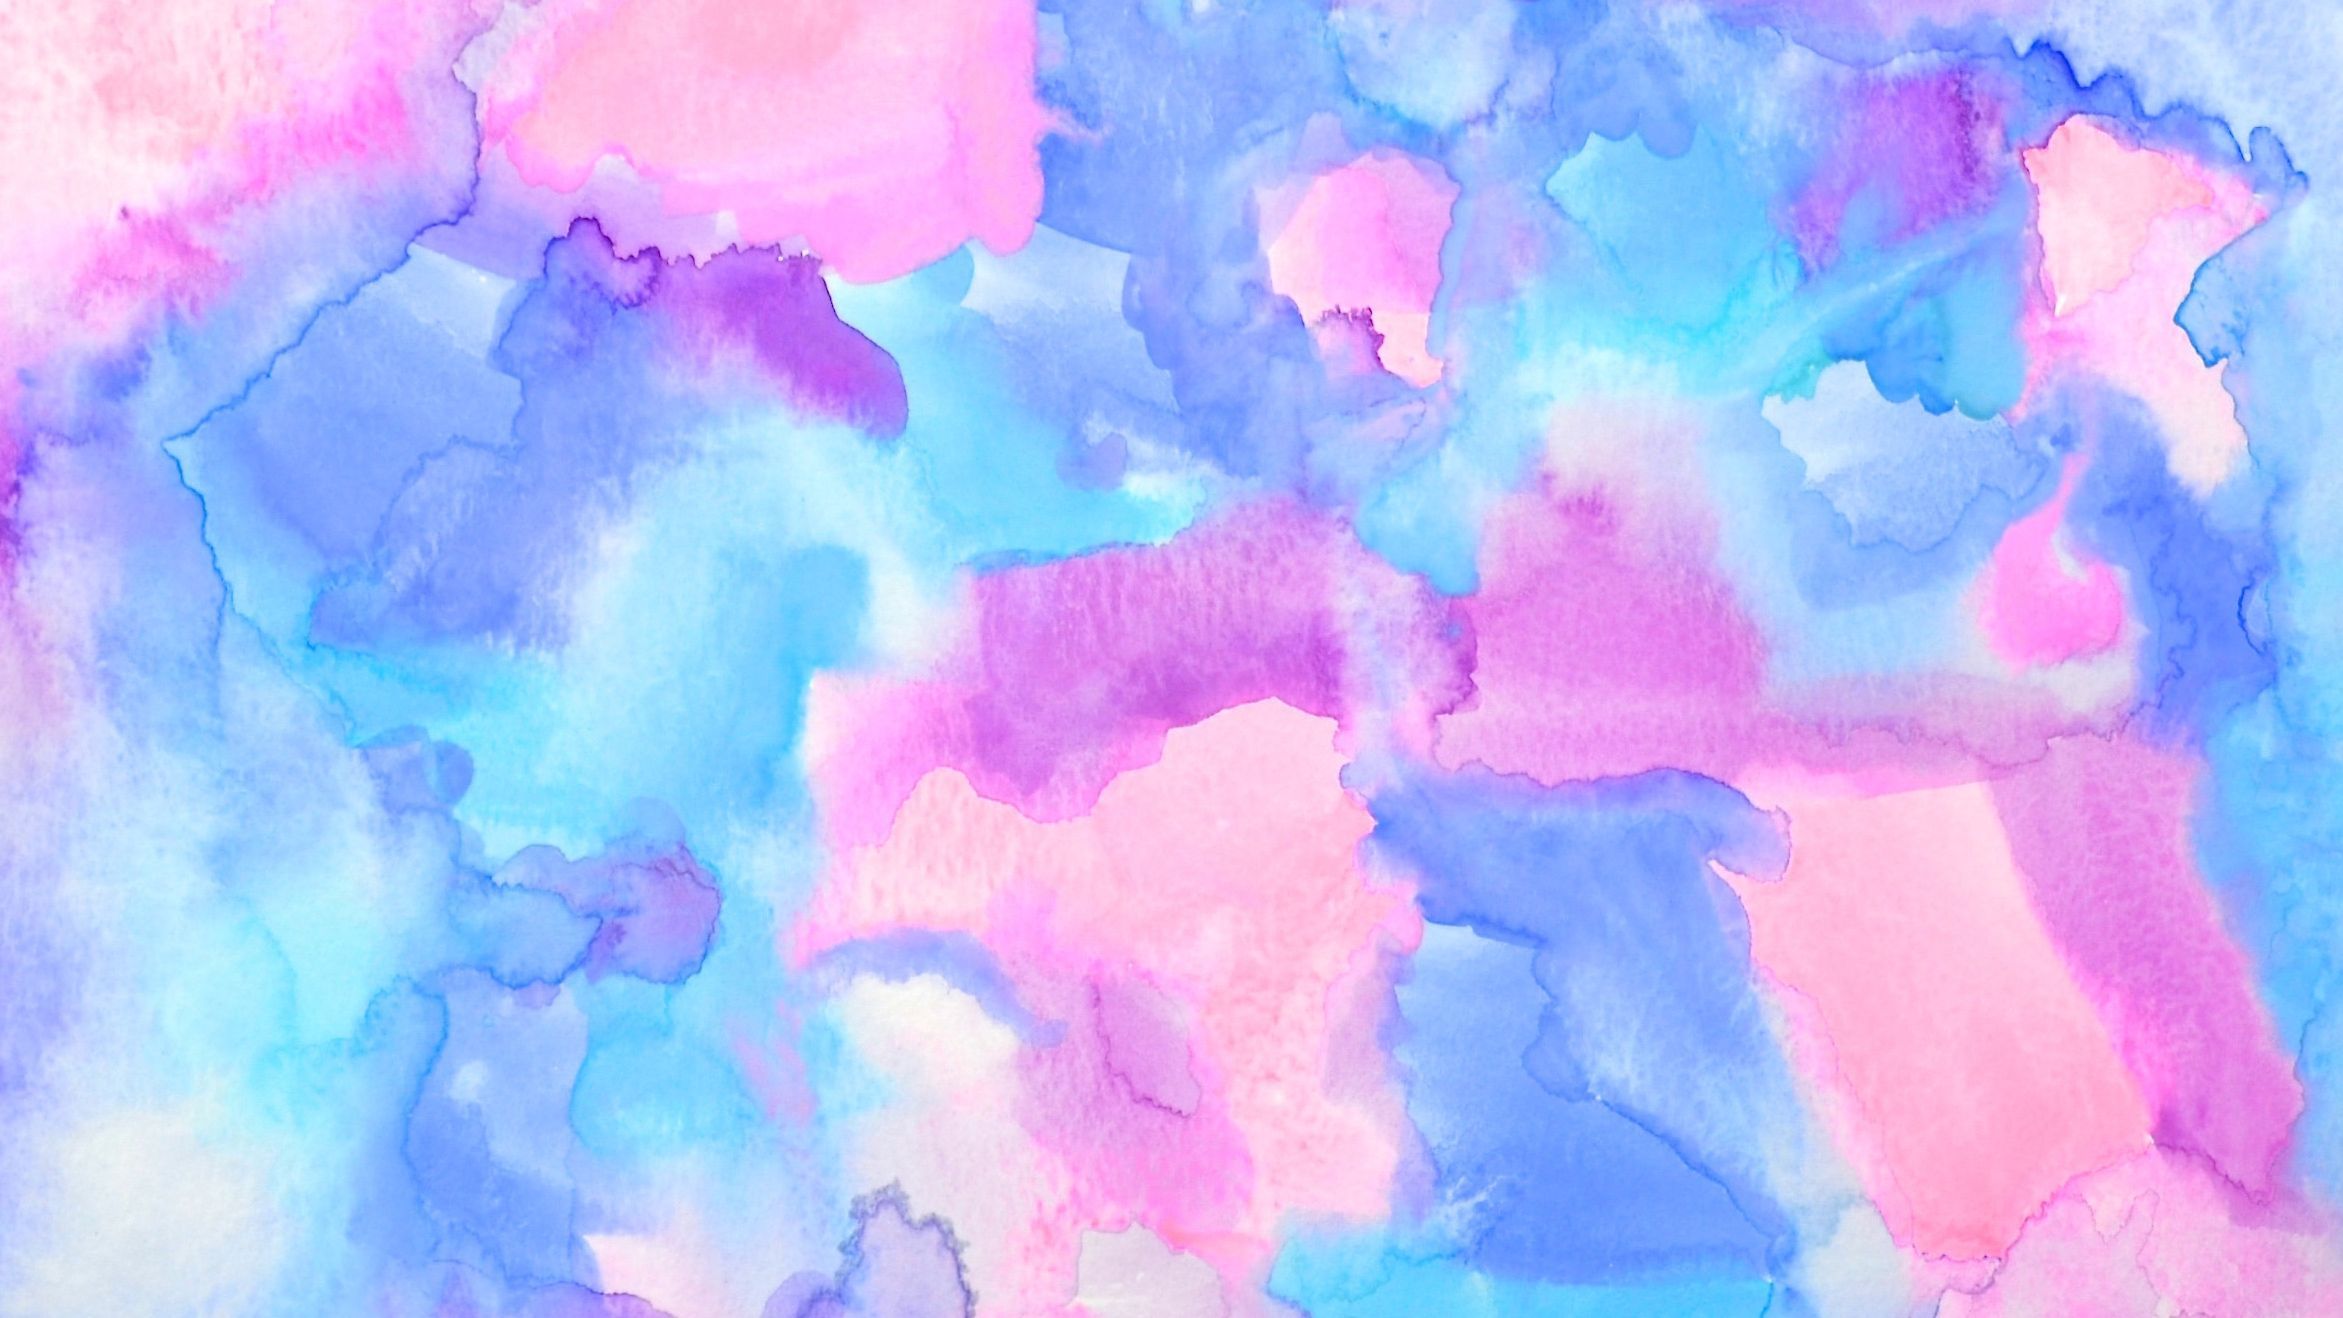 Ambrosia Watercolor Download Watercolor Desktop Wallpaper Imac